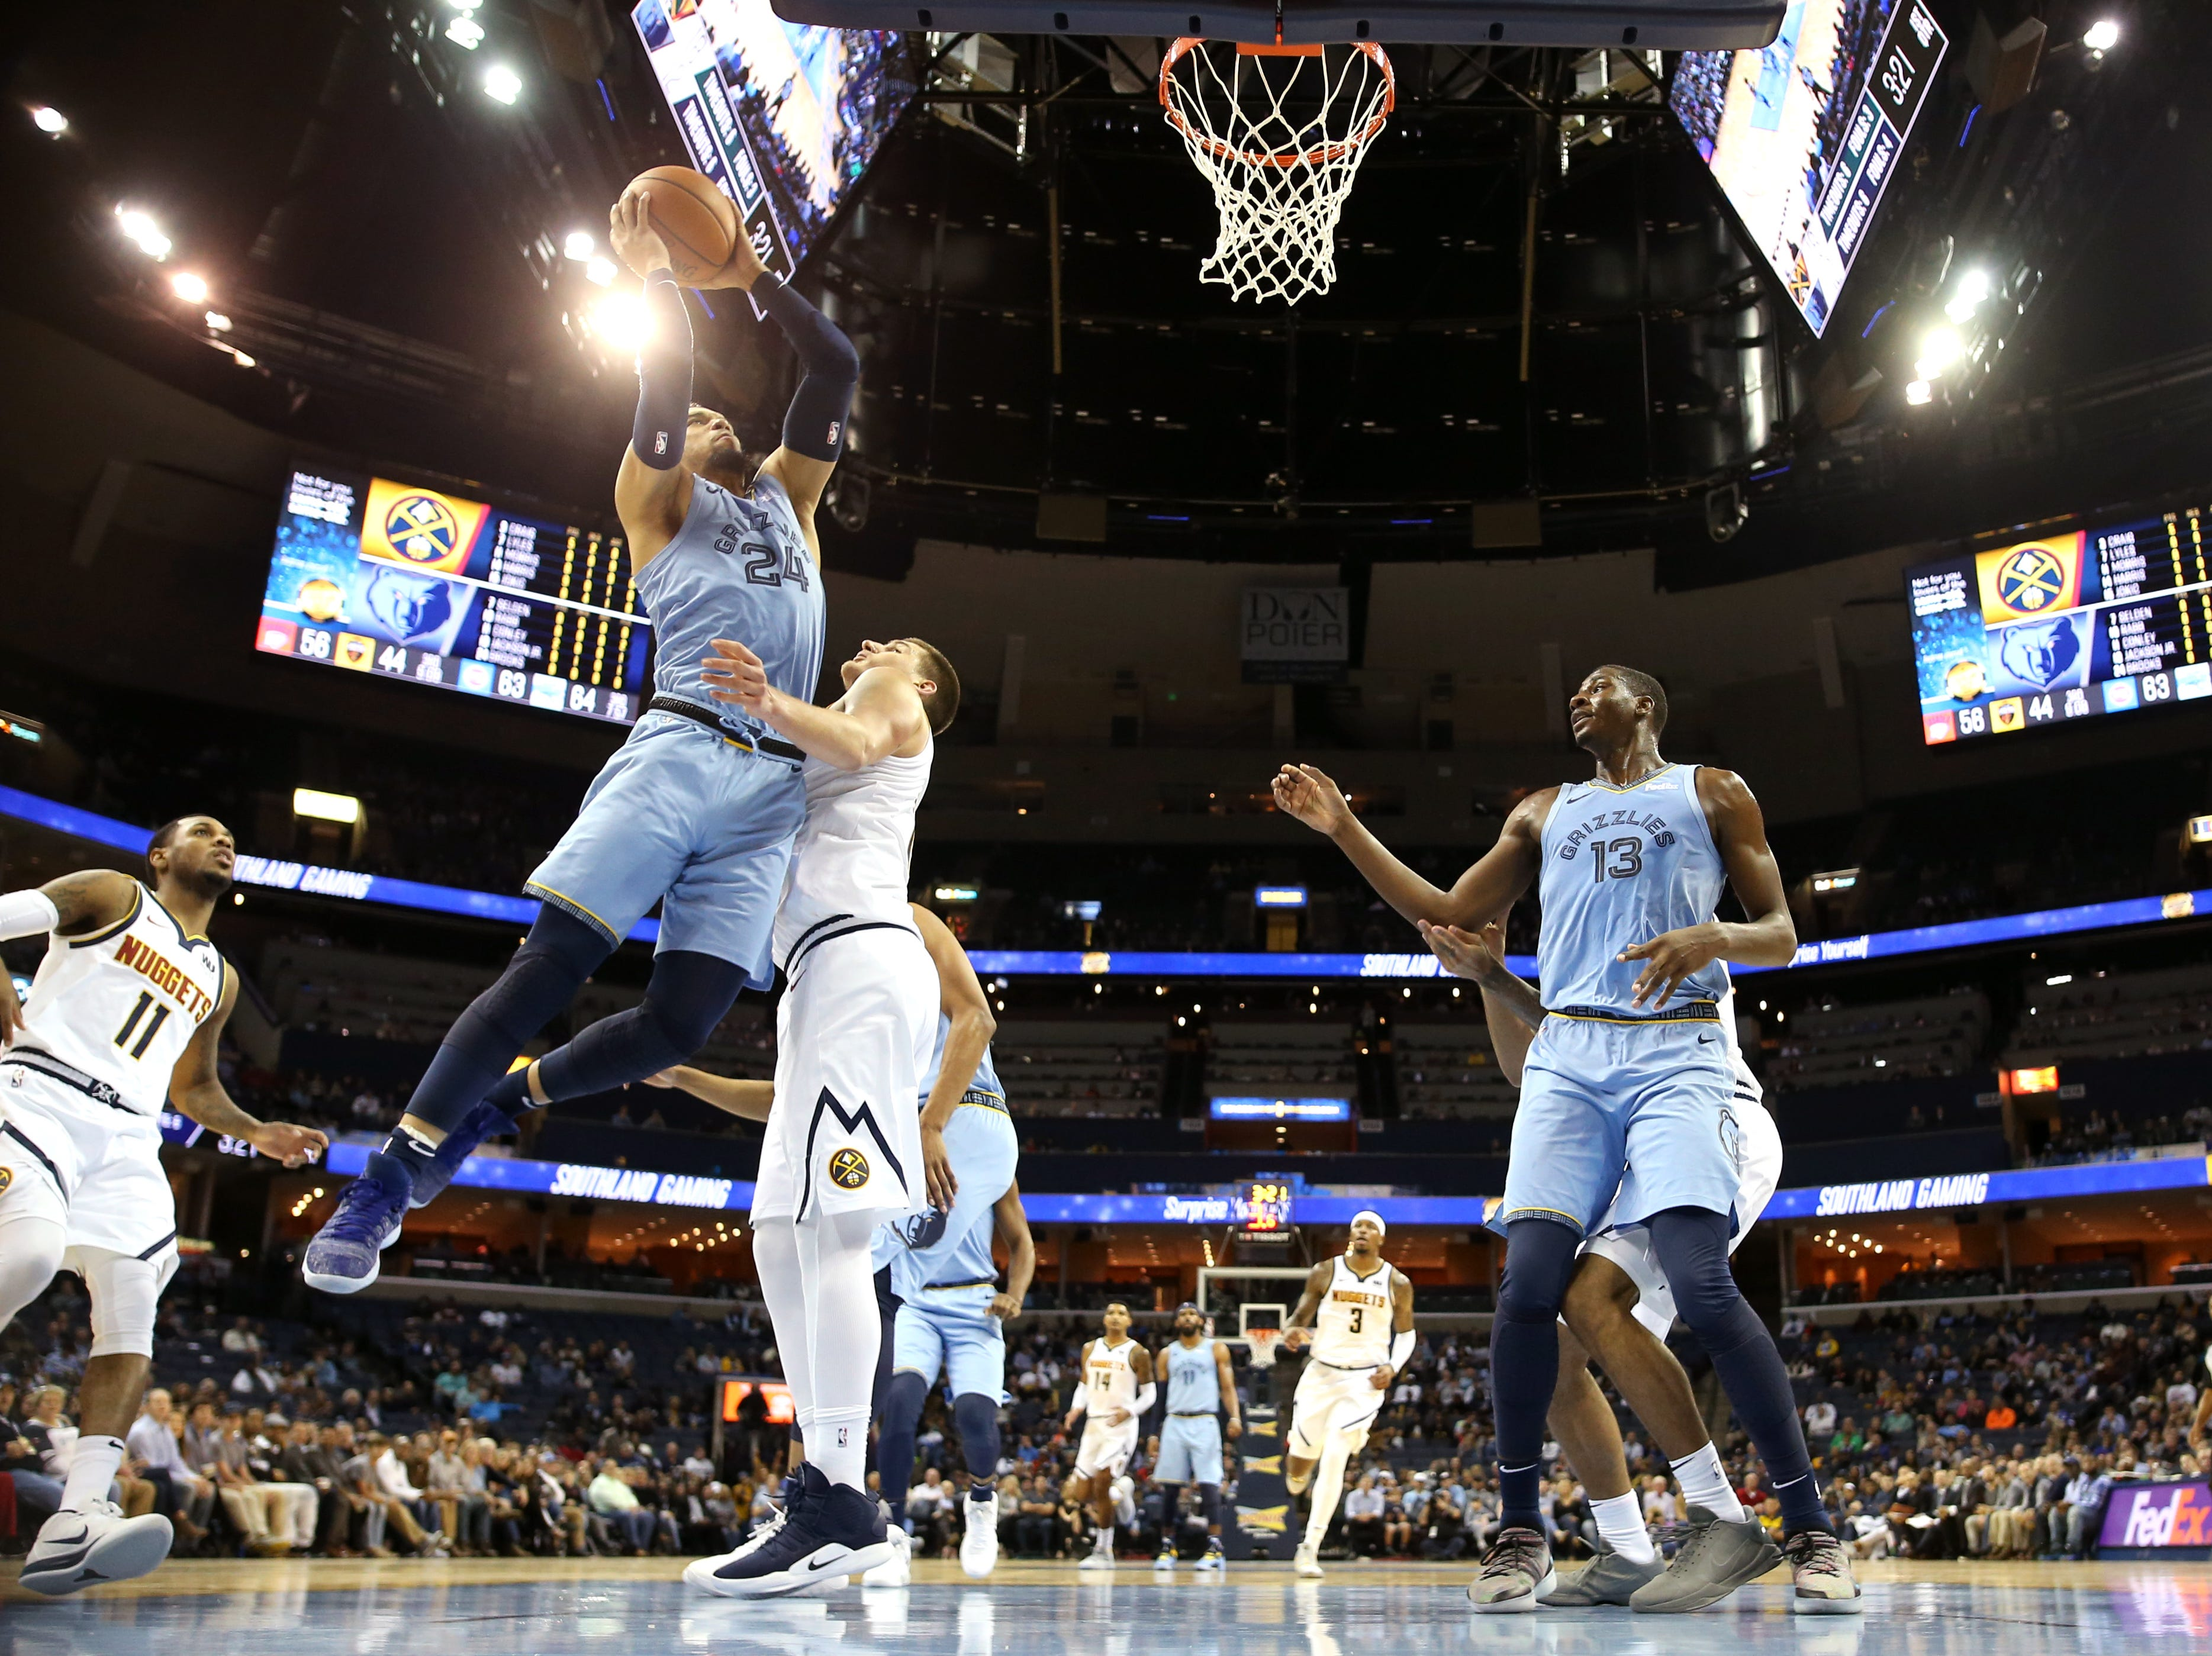 Memphis Grizzlies guard Dillon Brooks lays the ball up against Denver Nuggets center Nikola Jokic during their game at the FedExForum on Wednesday, November 7, 2018.